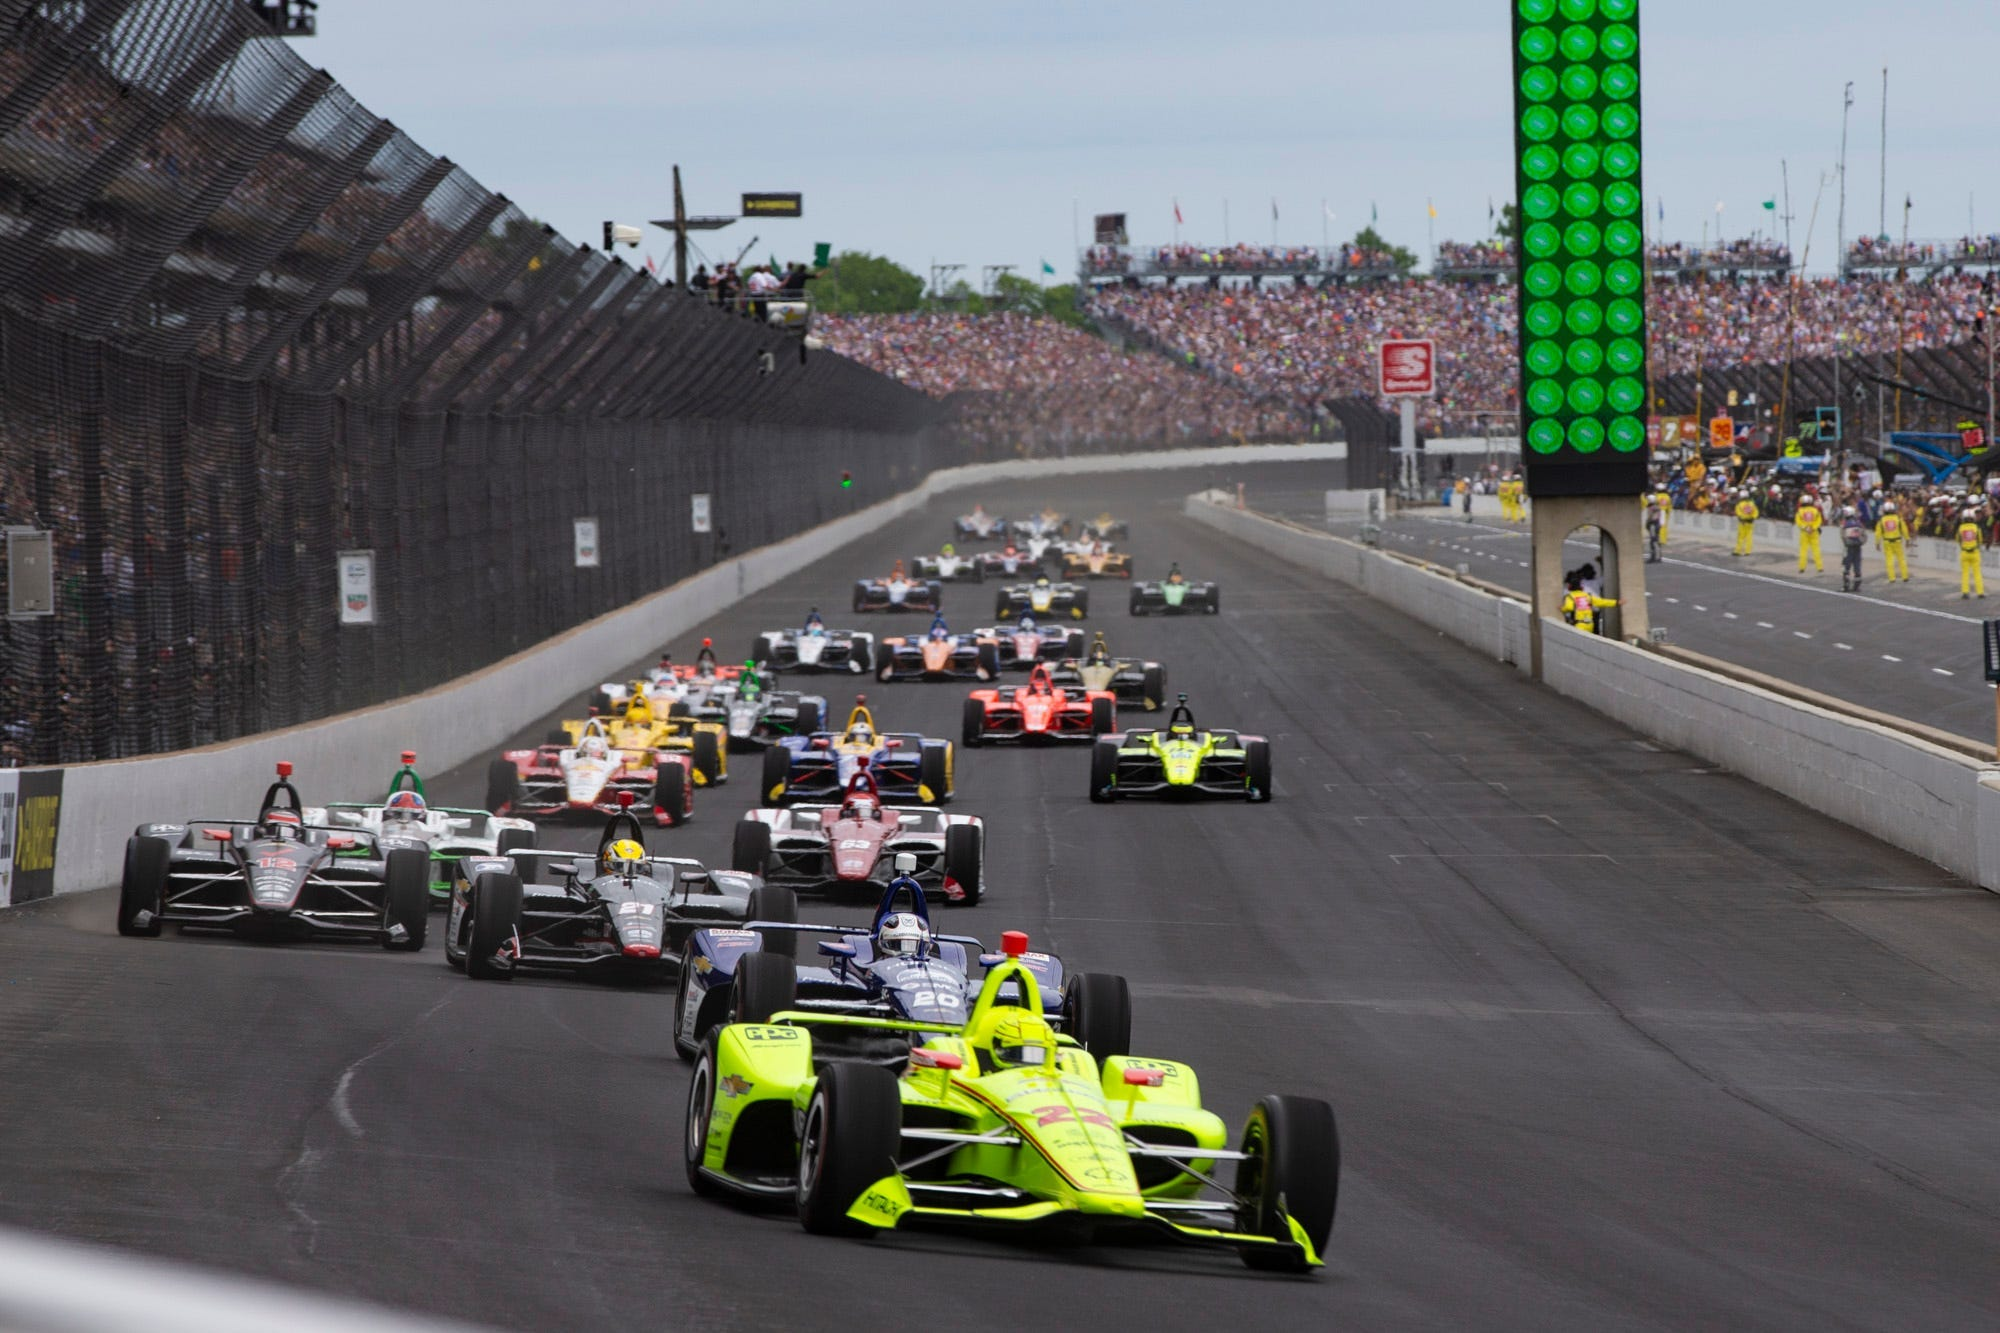 Indianapolis 500 2020: Start time, lineup, TV/radio schedule and more